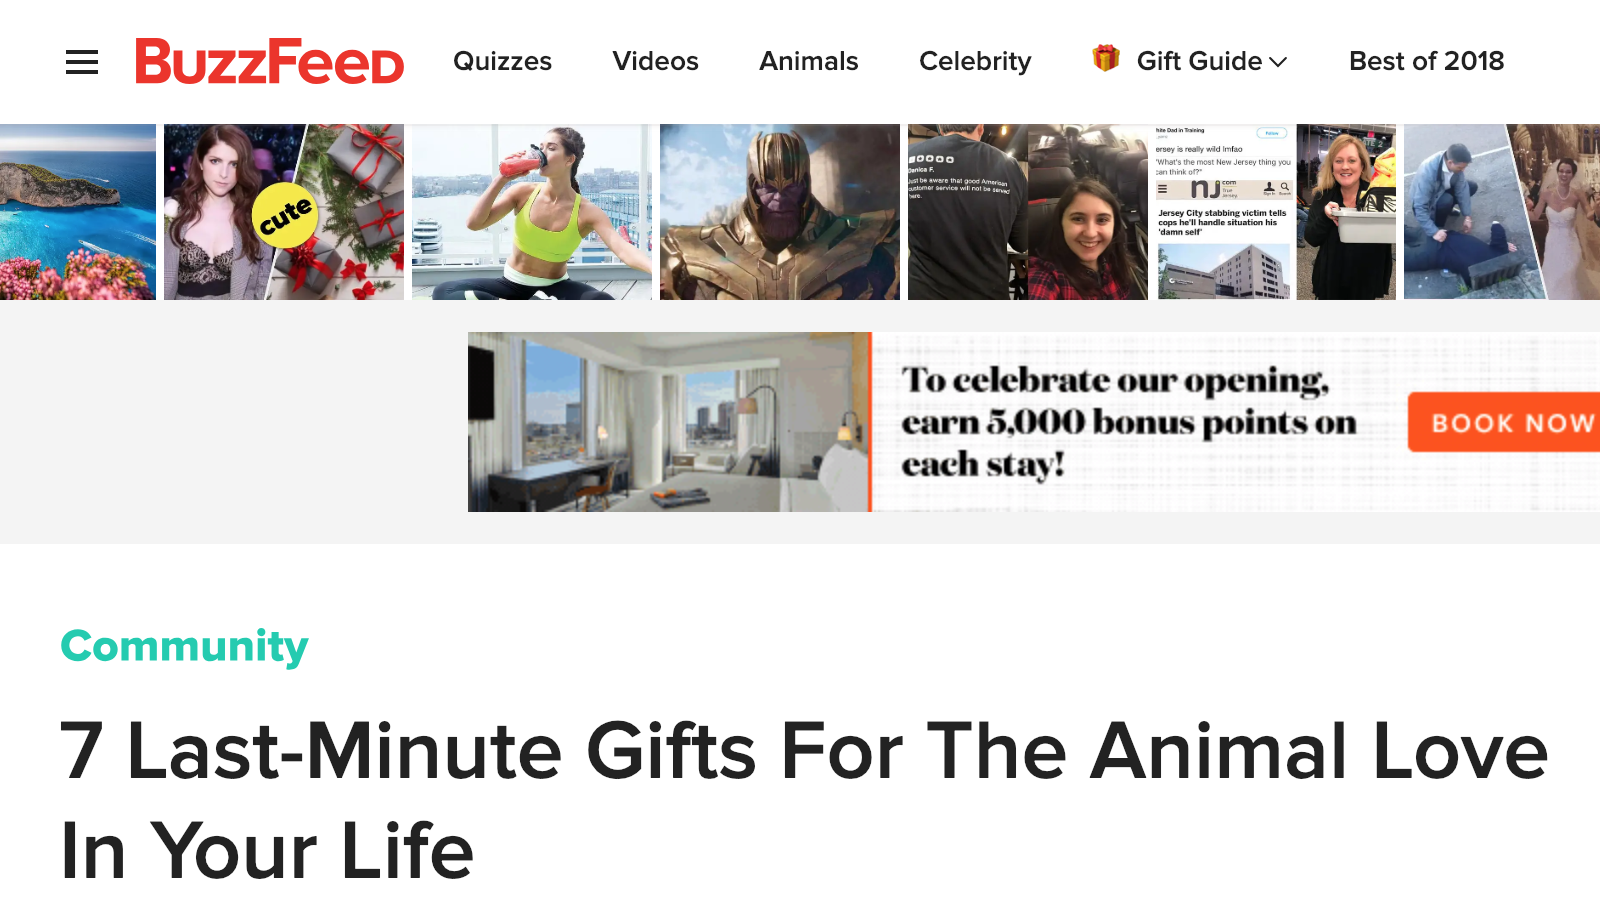 header for Buzzfeed's Last-Minute Gifts for the Animal Love in Your Life